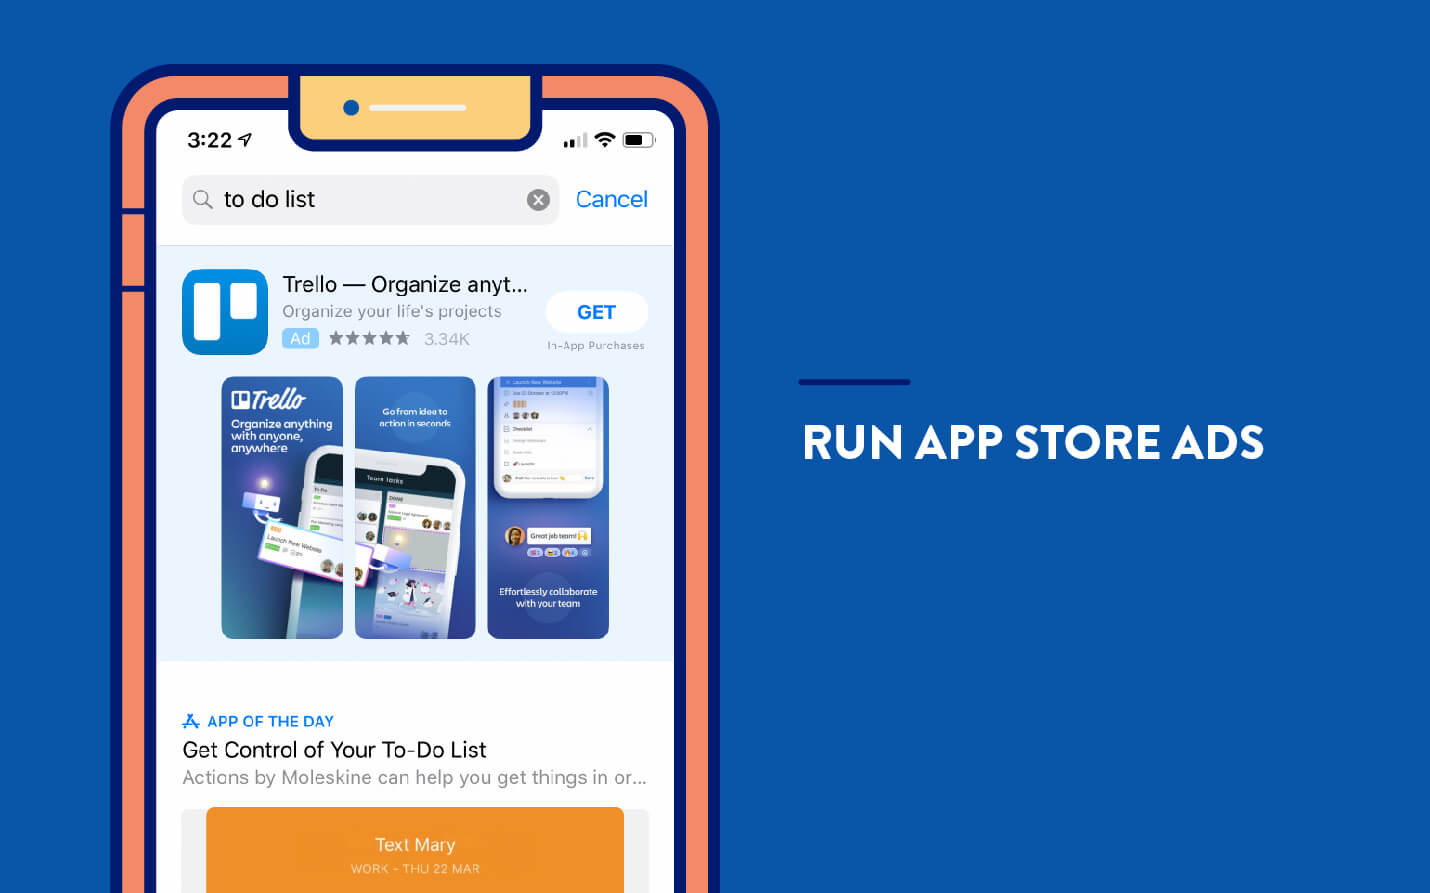 app marketing example from app store ad search to do list and trello ad